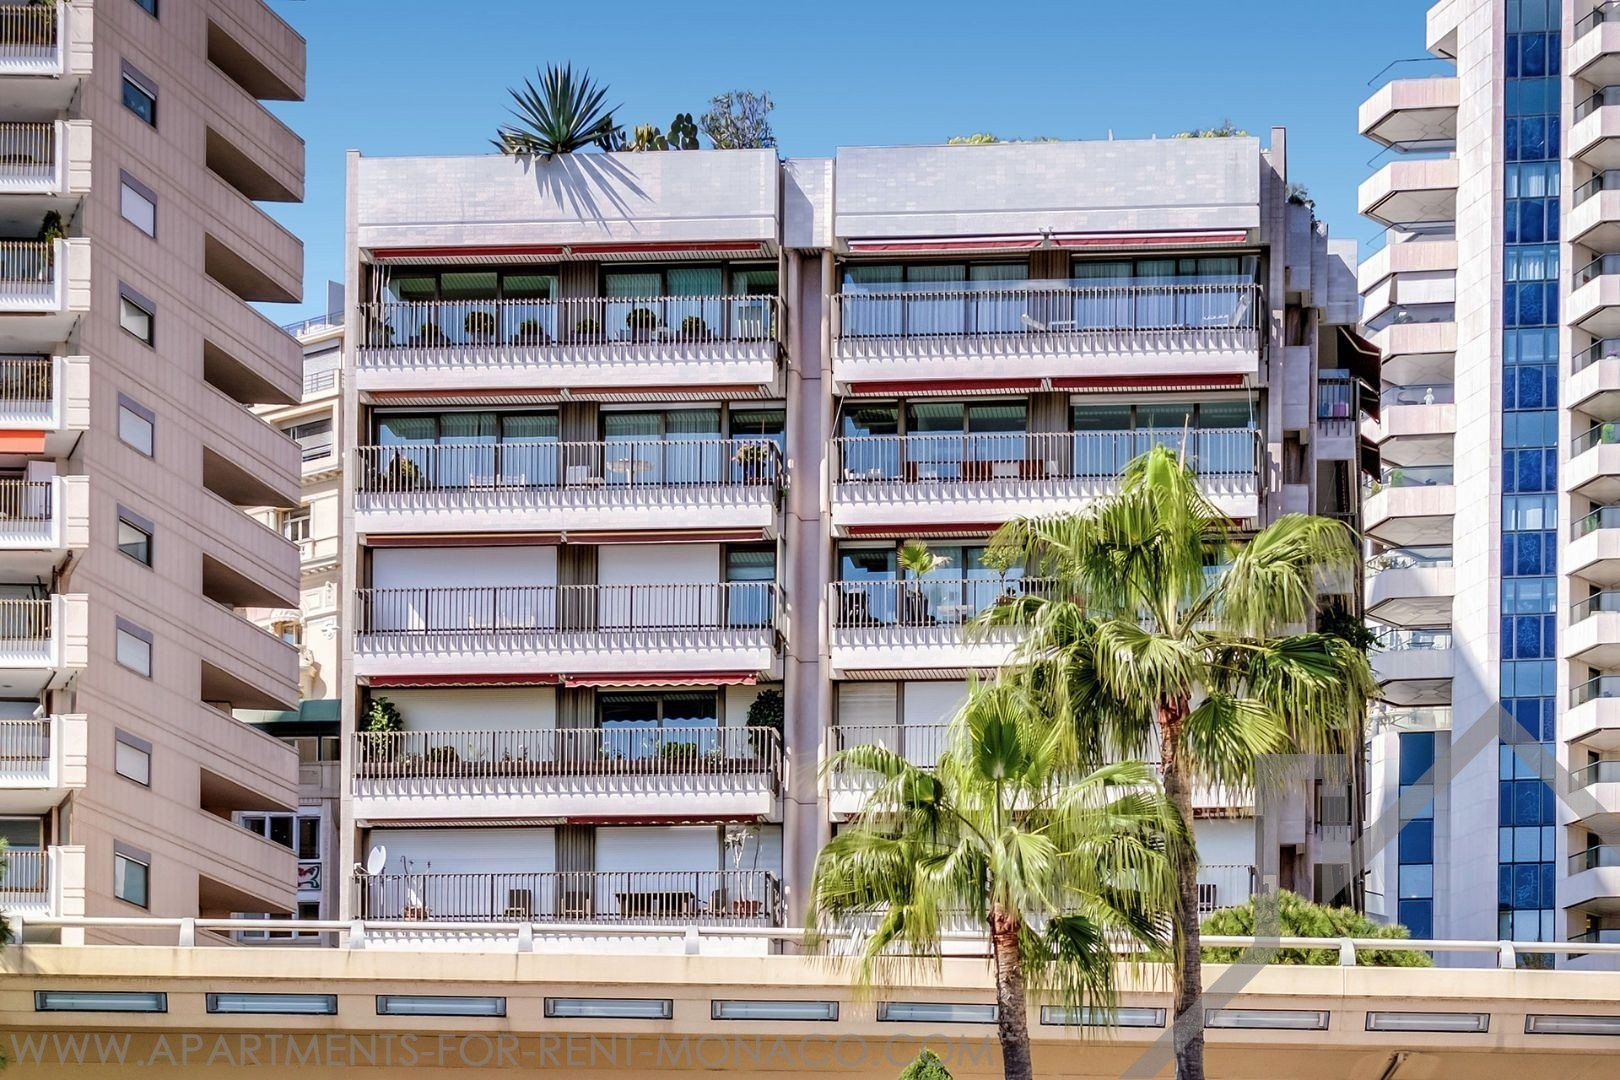 THE MIRABEL - Apartments for rent in Monaco